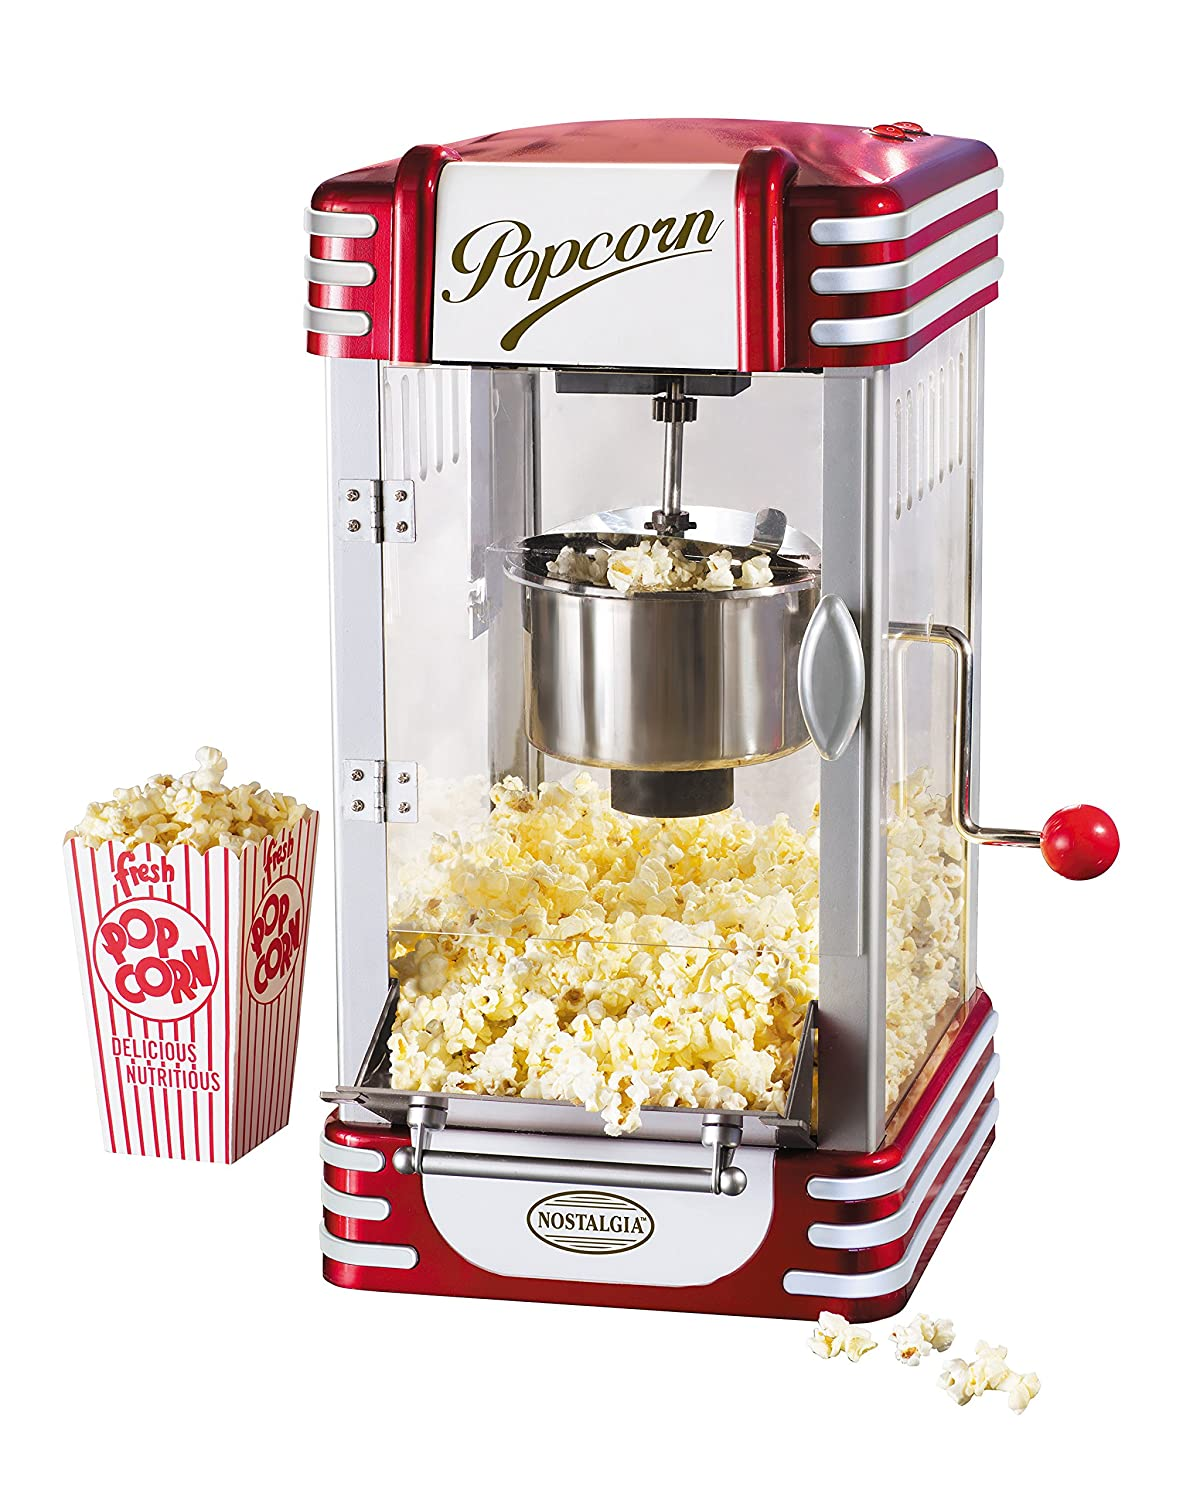 Nostalgia RKP630 Retro Kettle Popcorn Maker, Red EMGD9